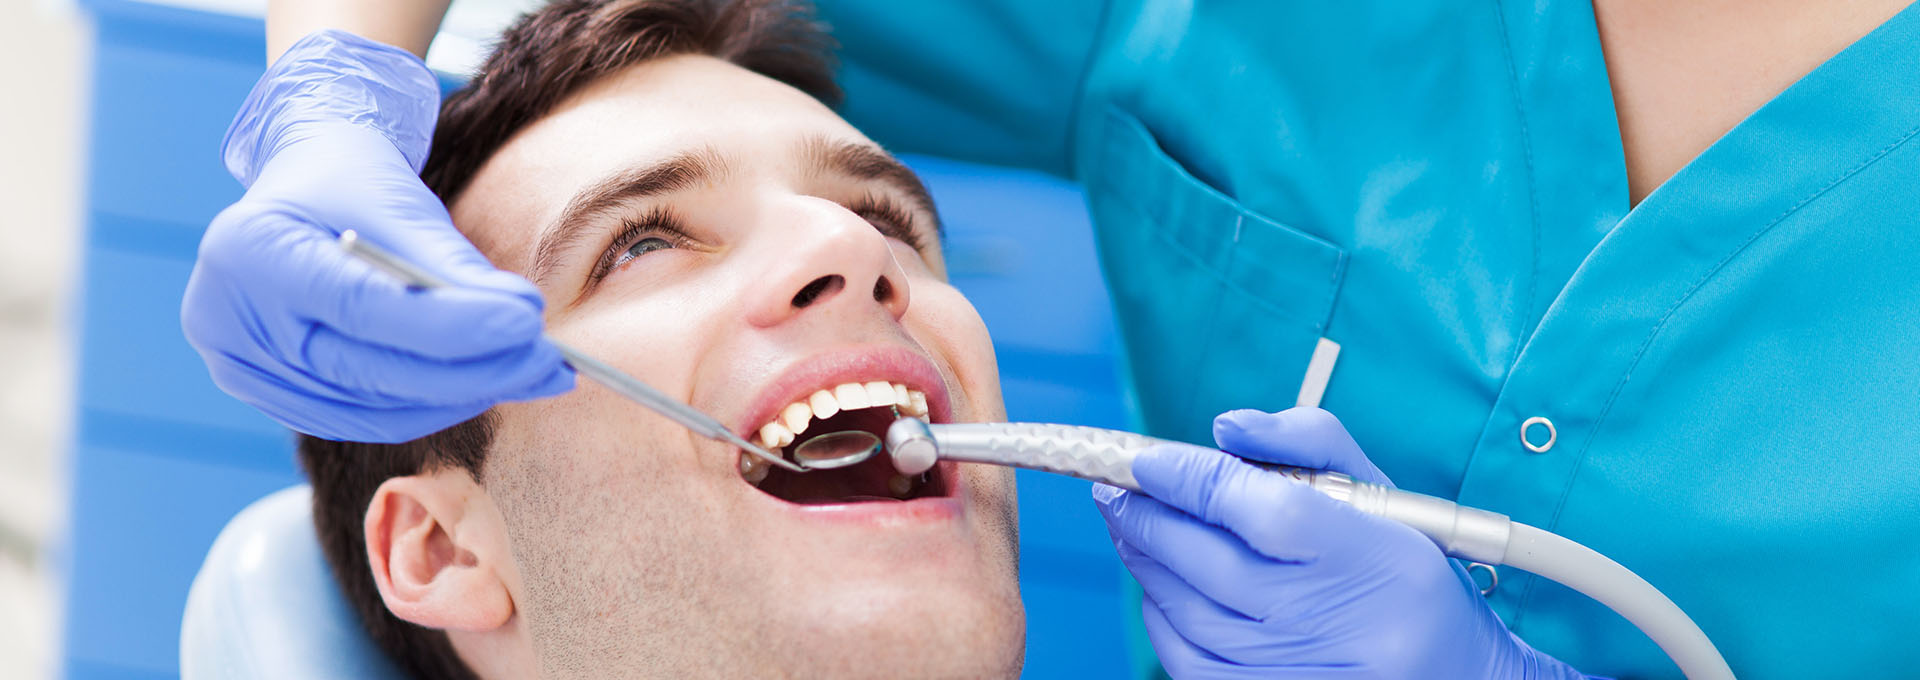 Discount Dental Coverage - Questions to Ask Before Joining a Plan